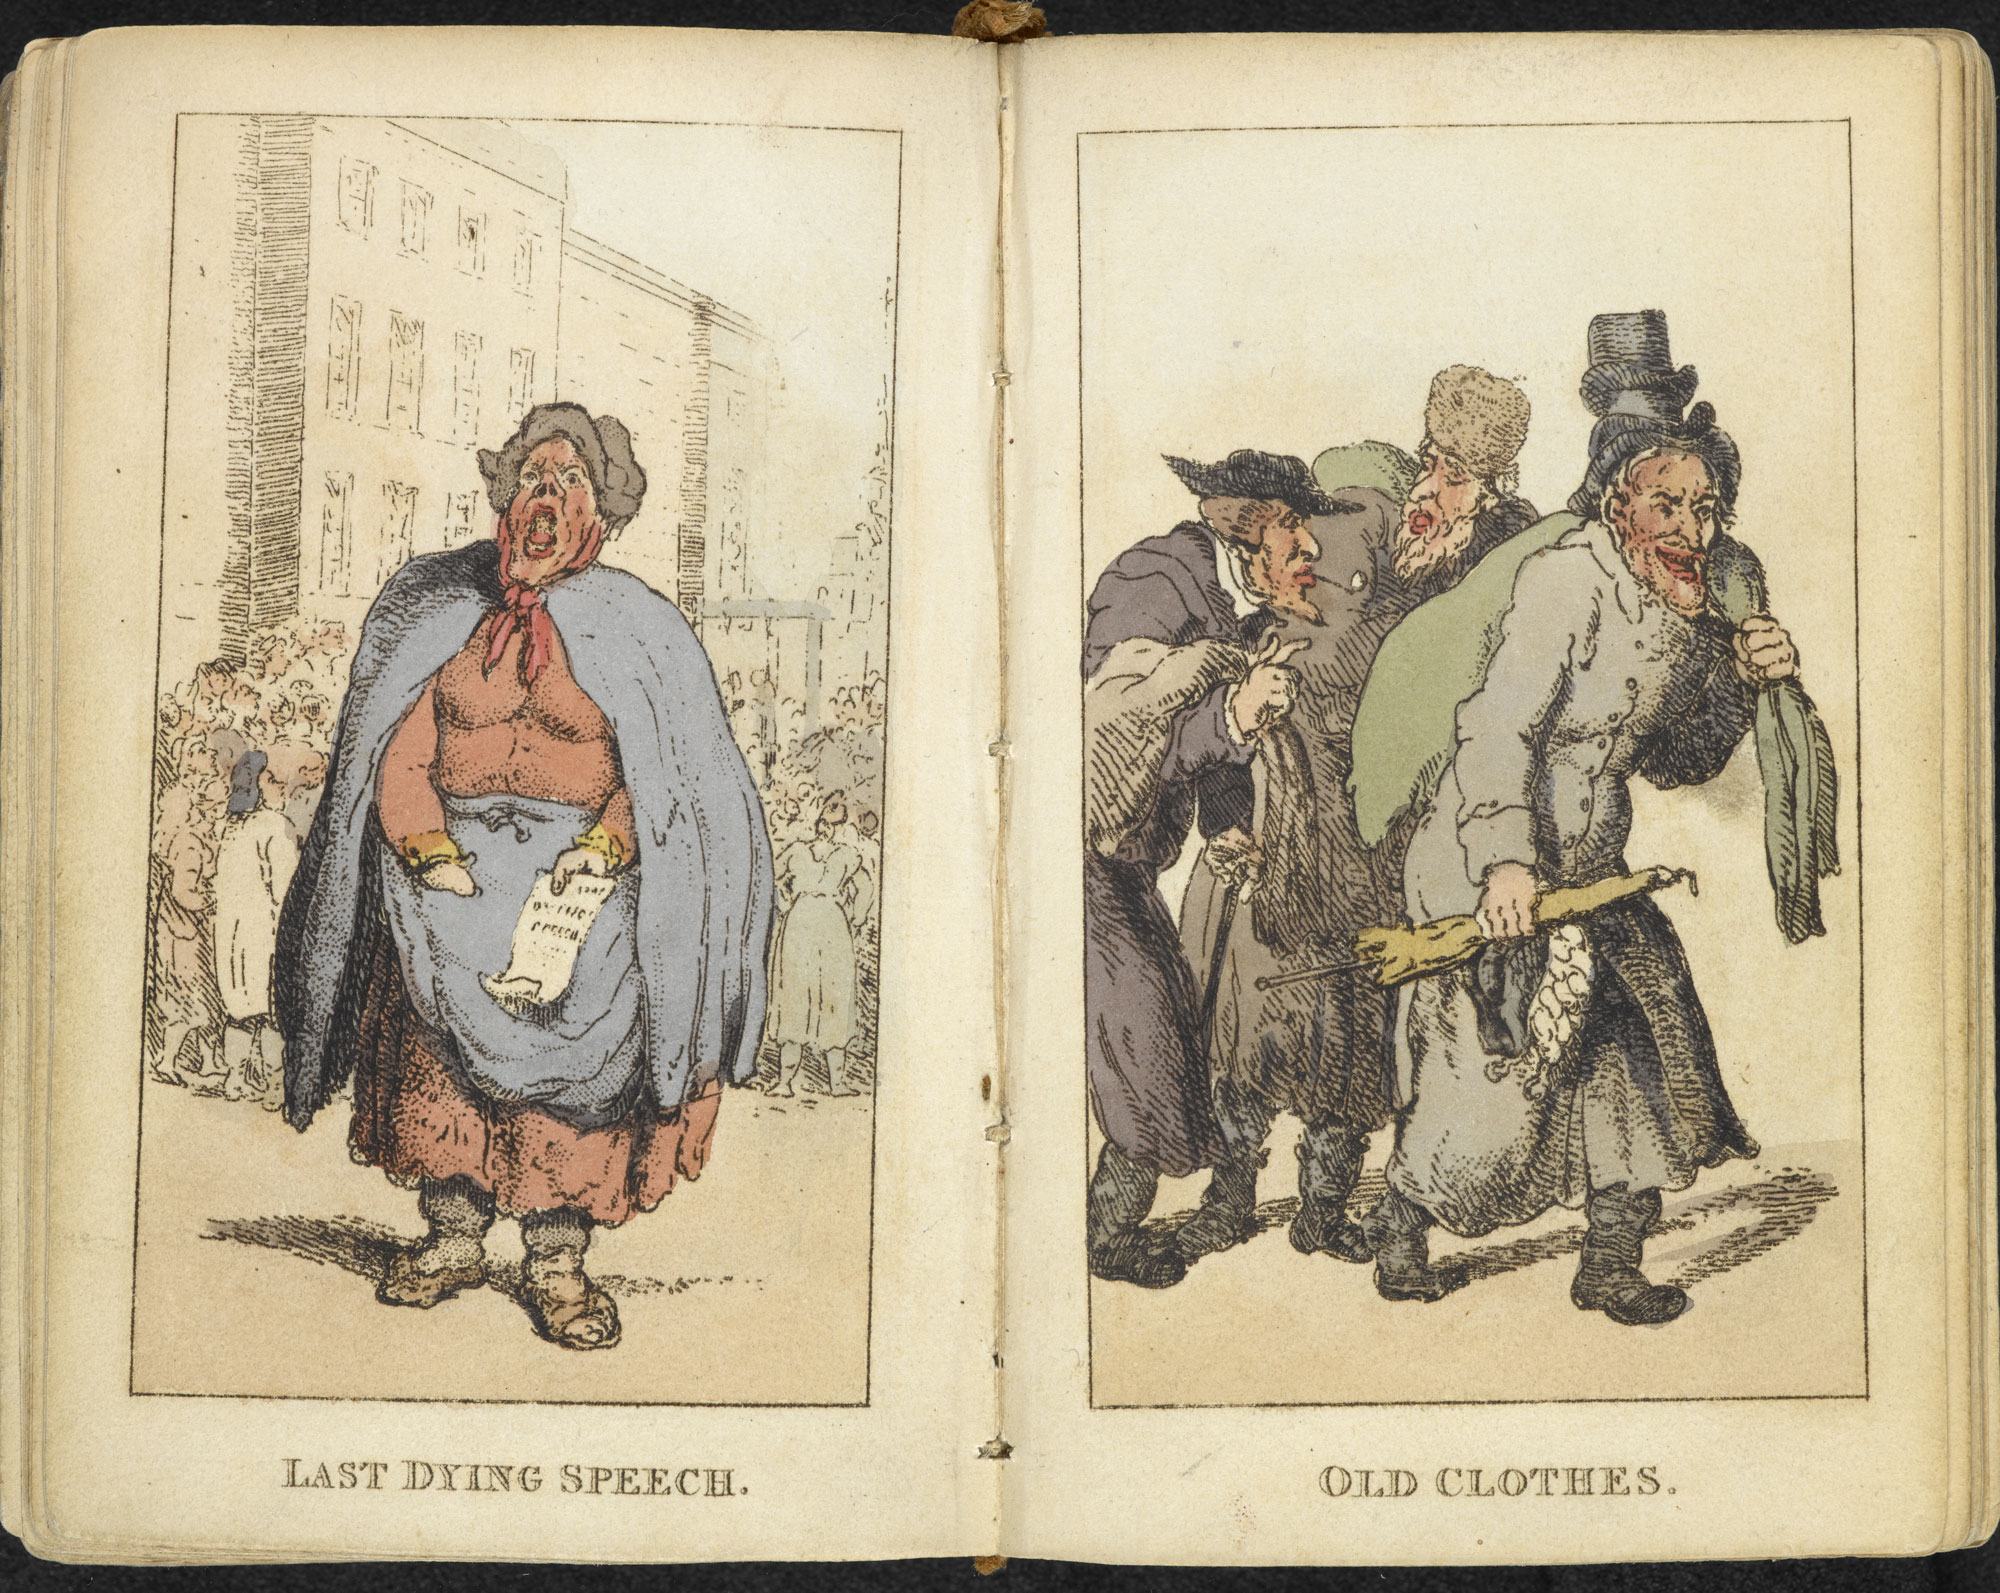 Rowlandson's Characteristic Sketches of the Lower Orders [page: ['Last dying speech'] and ['Old clothes']]